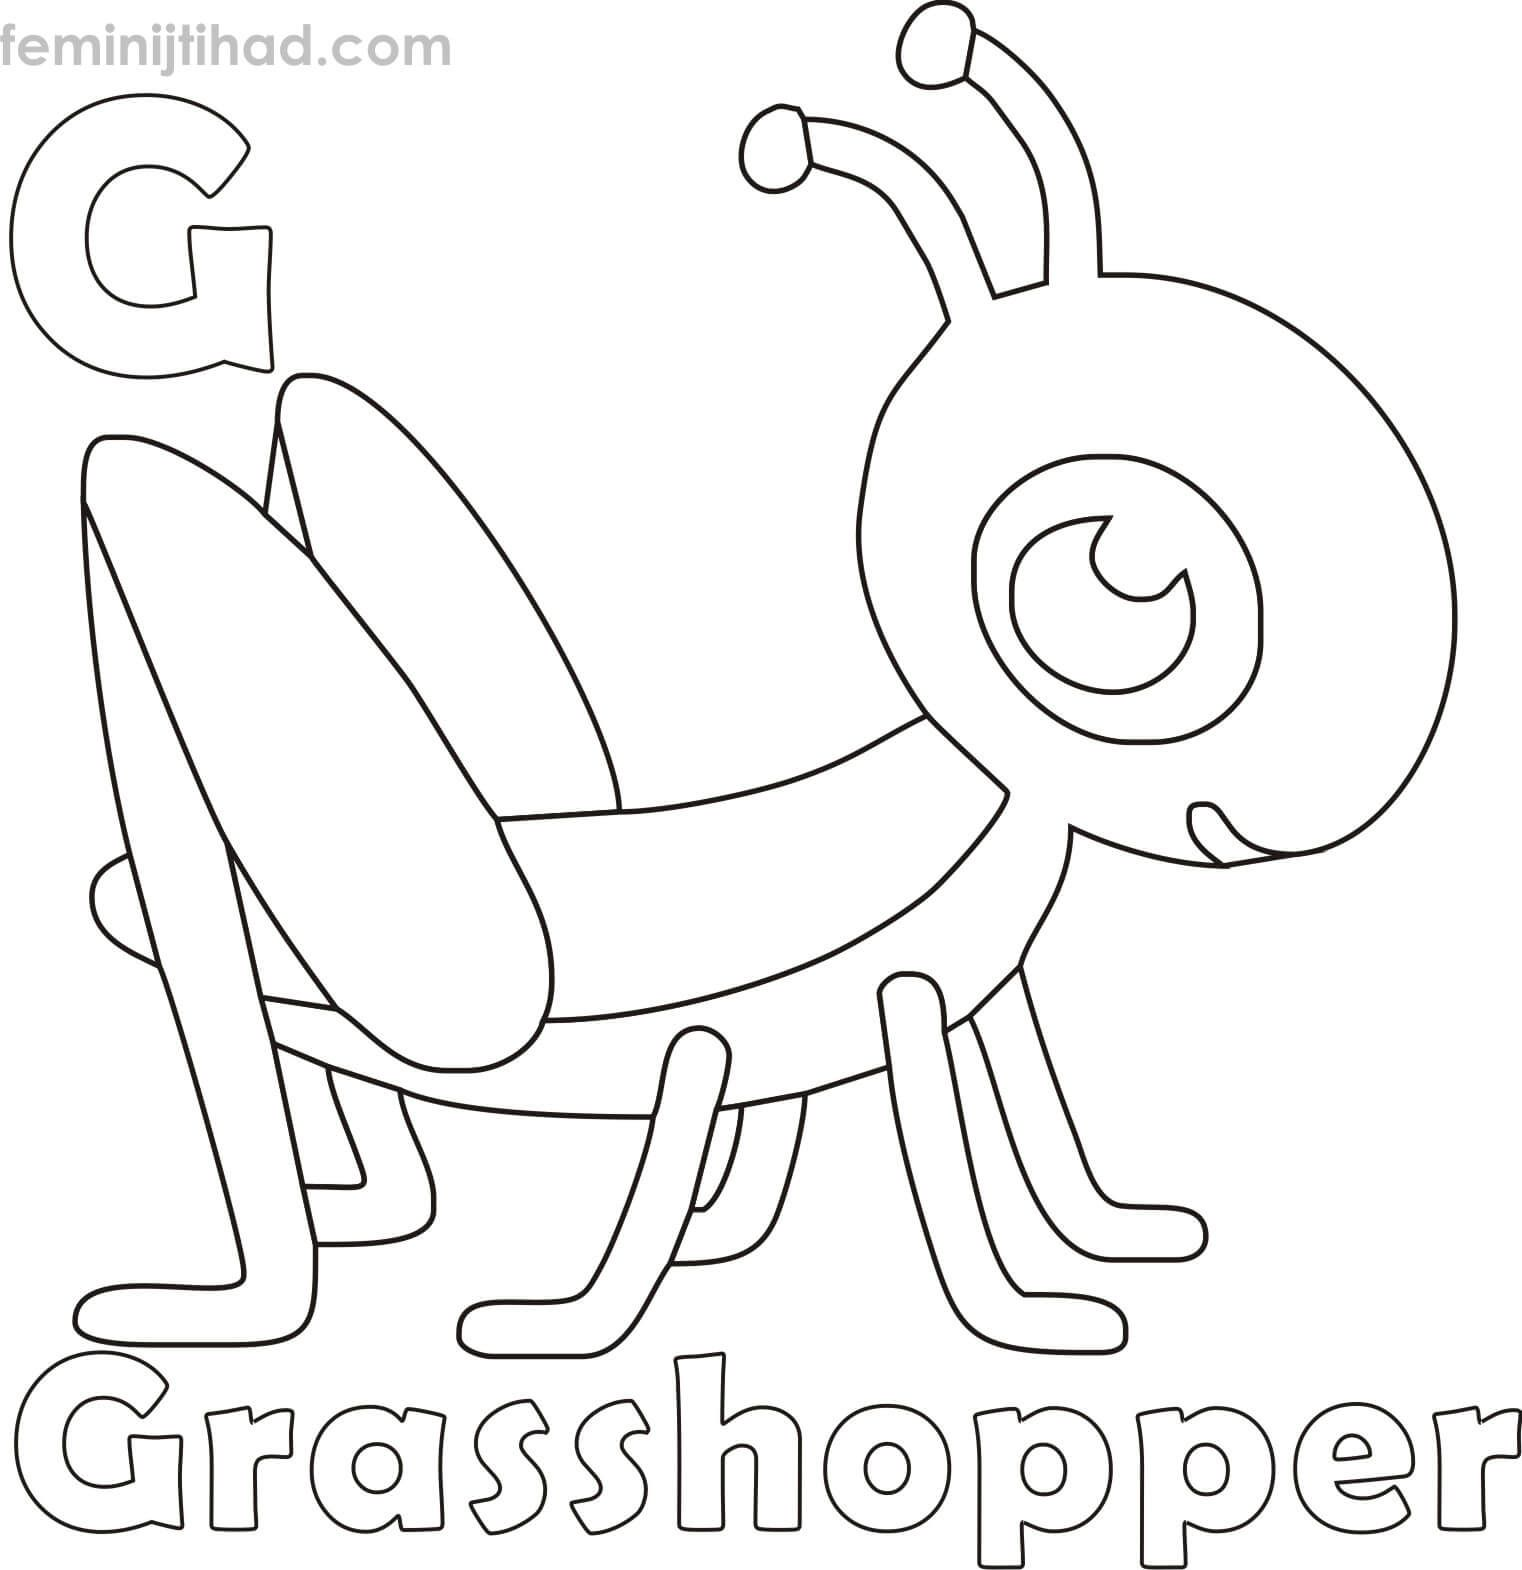 G For Grasshopper Coloring Pages For Kids In 2020 Coloring Pages Coloring Pages For Kids Animal Coloring Pages